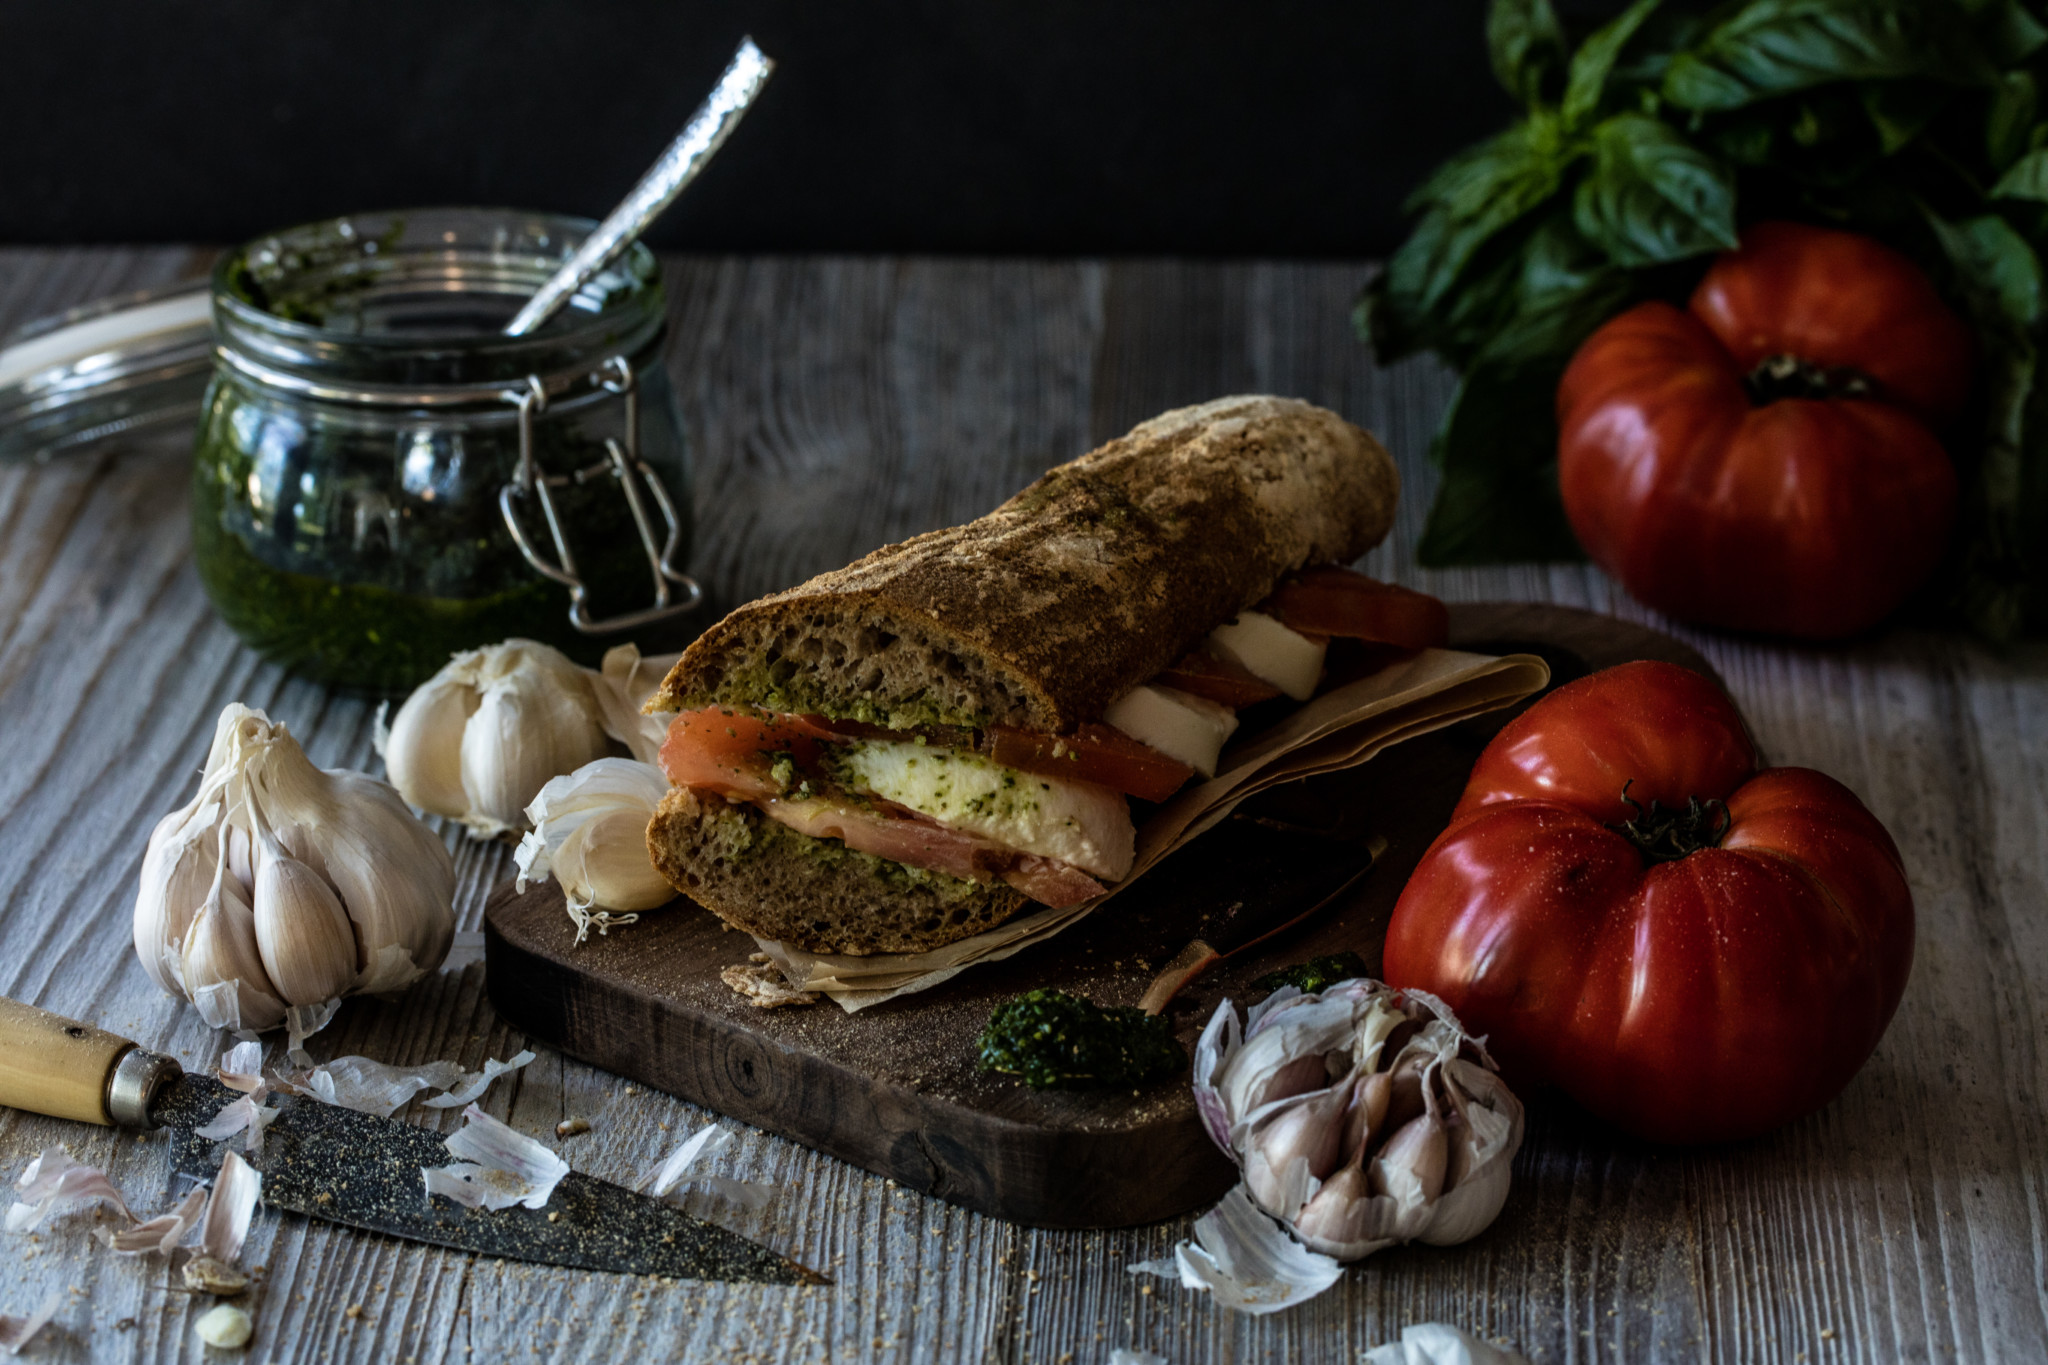 Food styling tomato pesto panini food photography